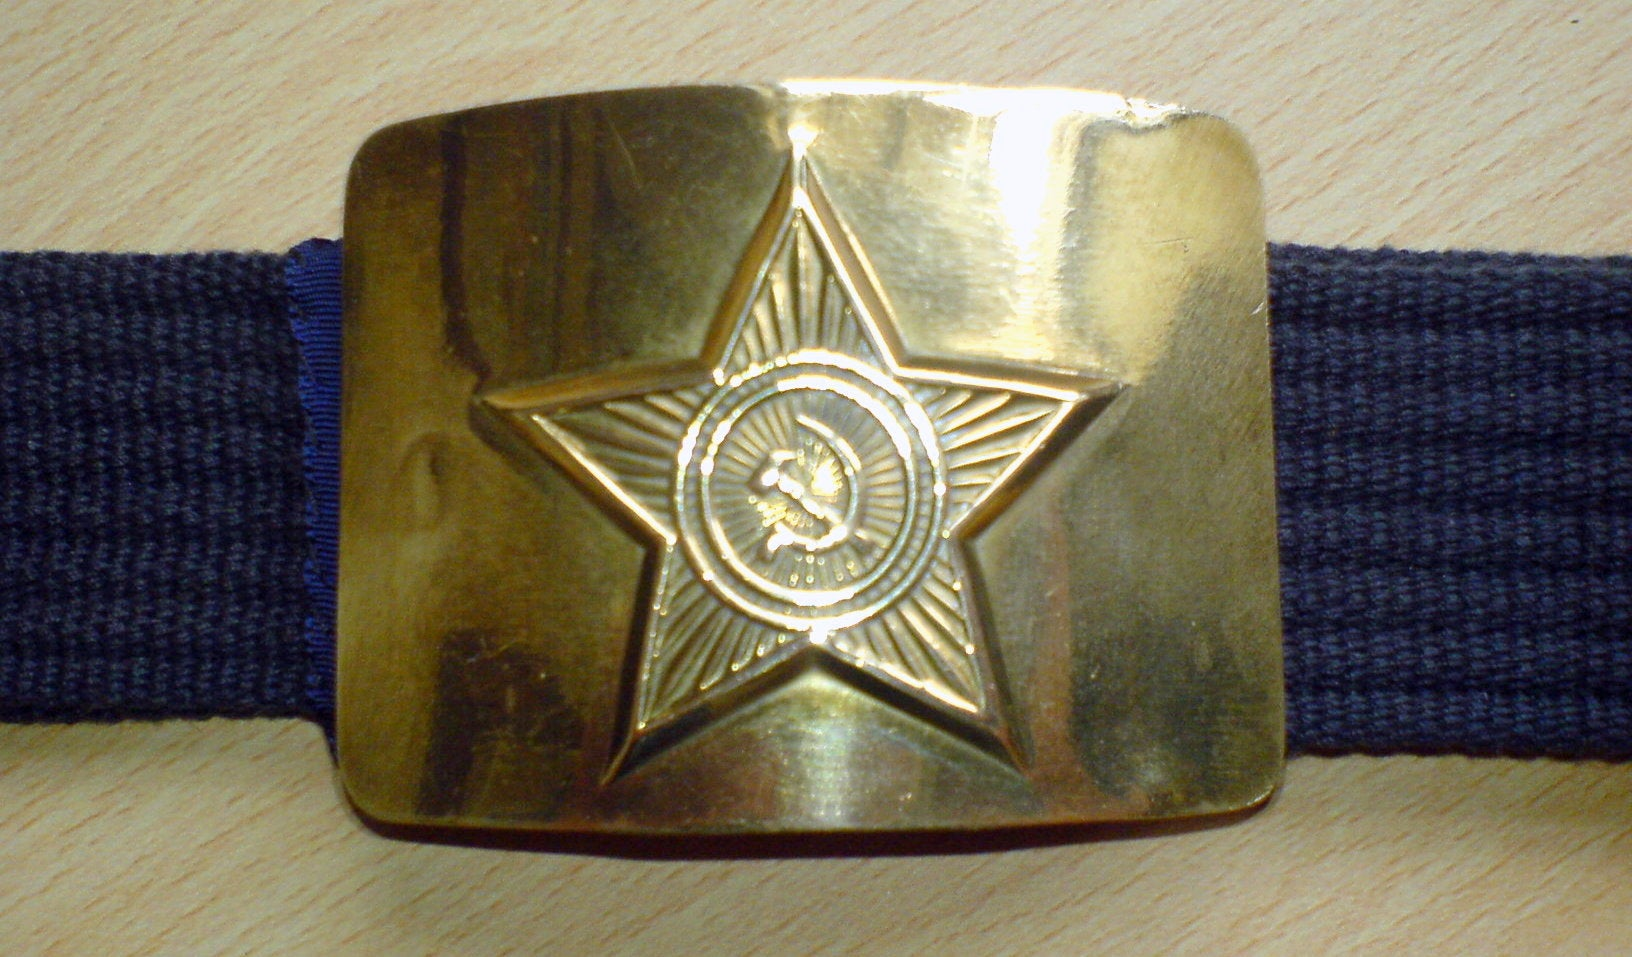 Brown leather belt with a metal buckle With a prayer in Cyrillic